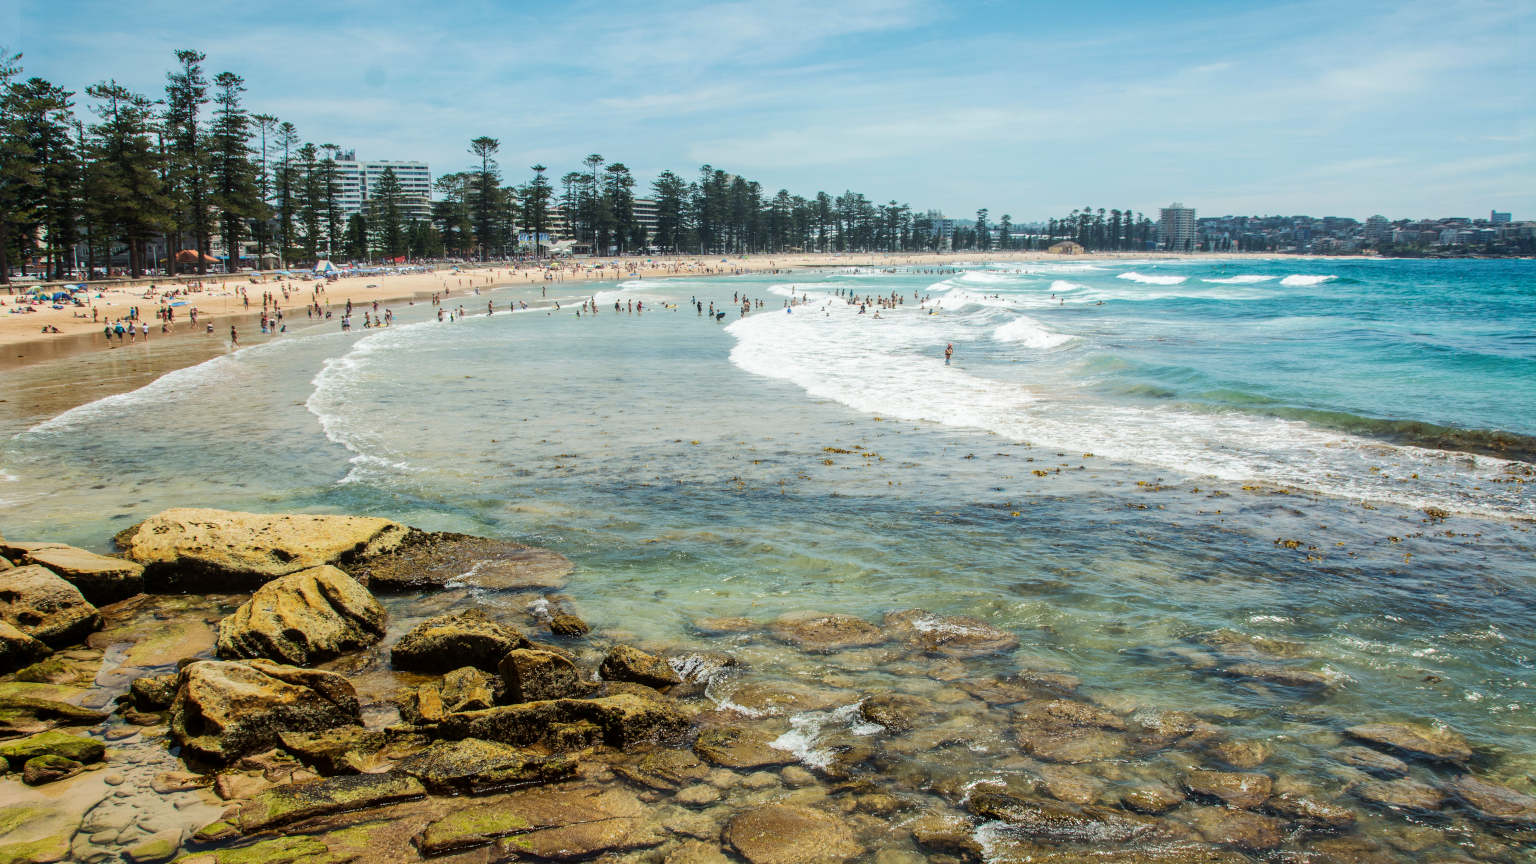 Day trip to Manly Beach from Sydney's CBD.